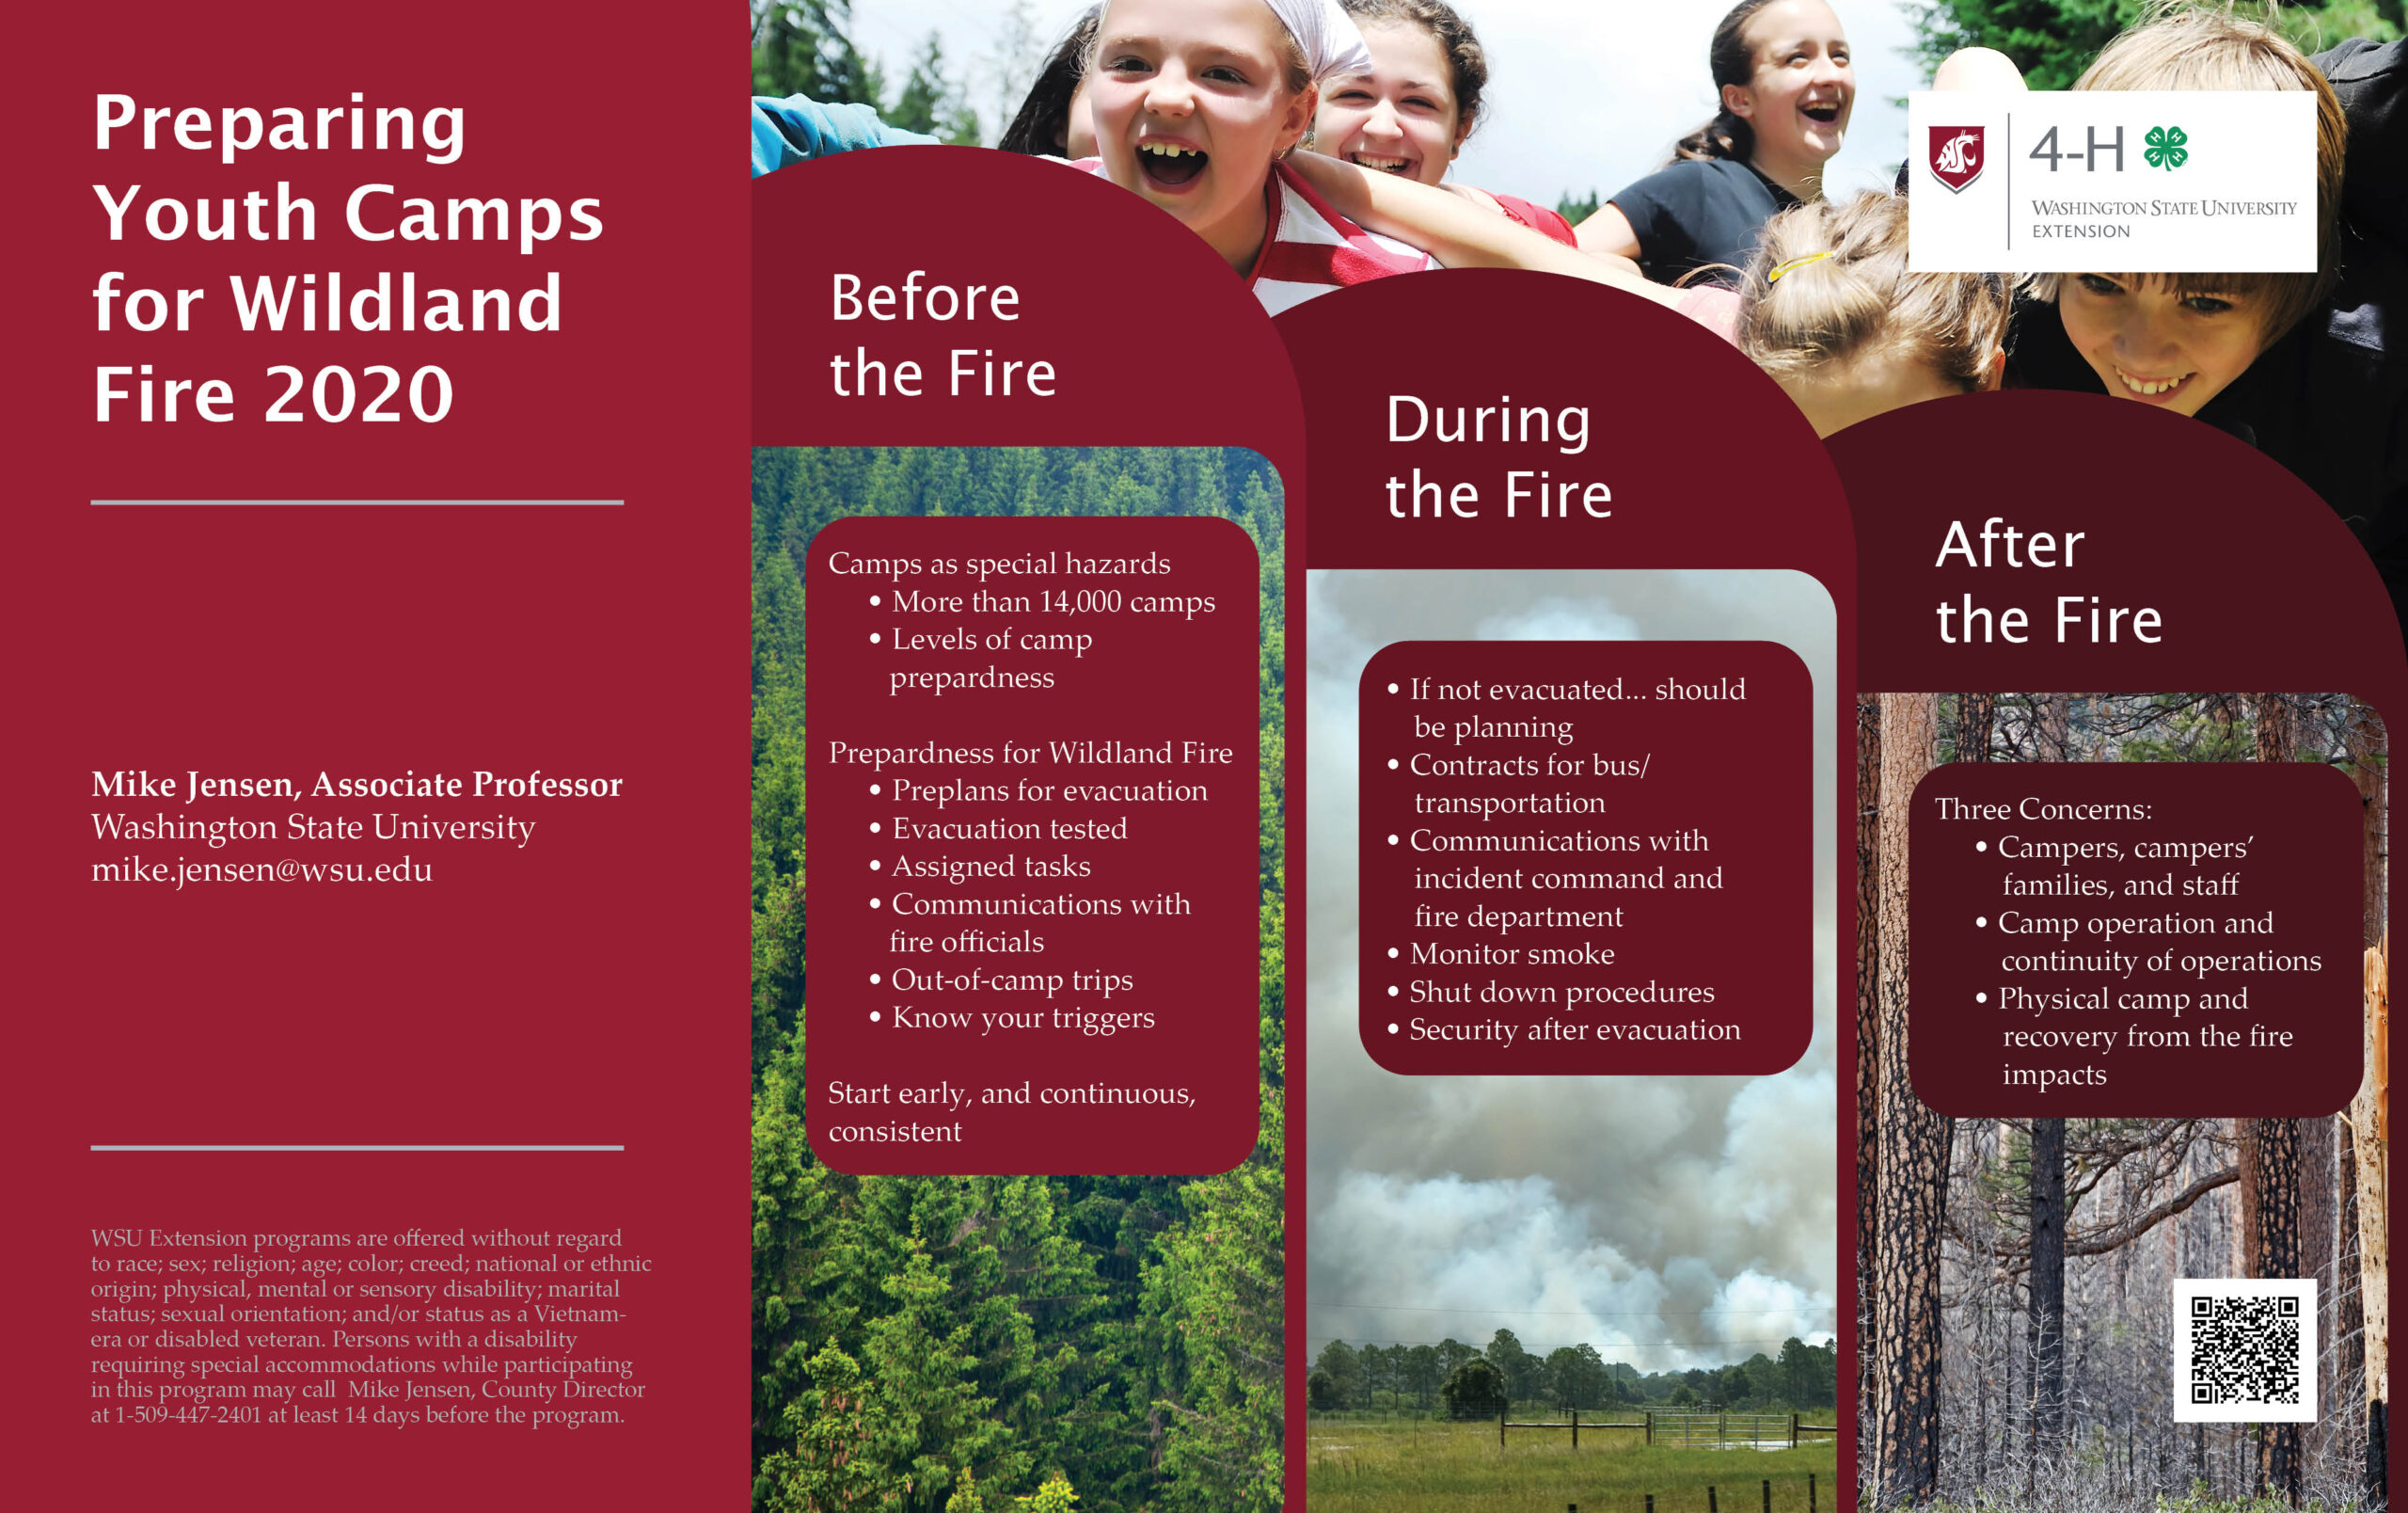 Preparing Youth Camps for Wildland Fire 2020 poster